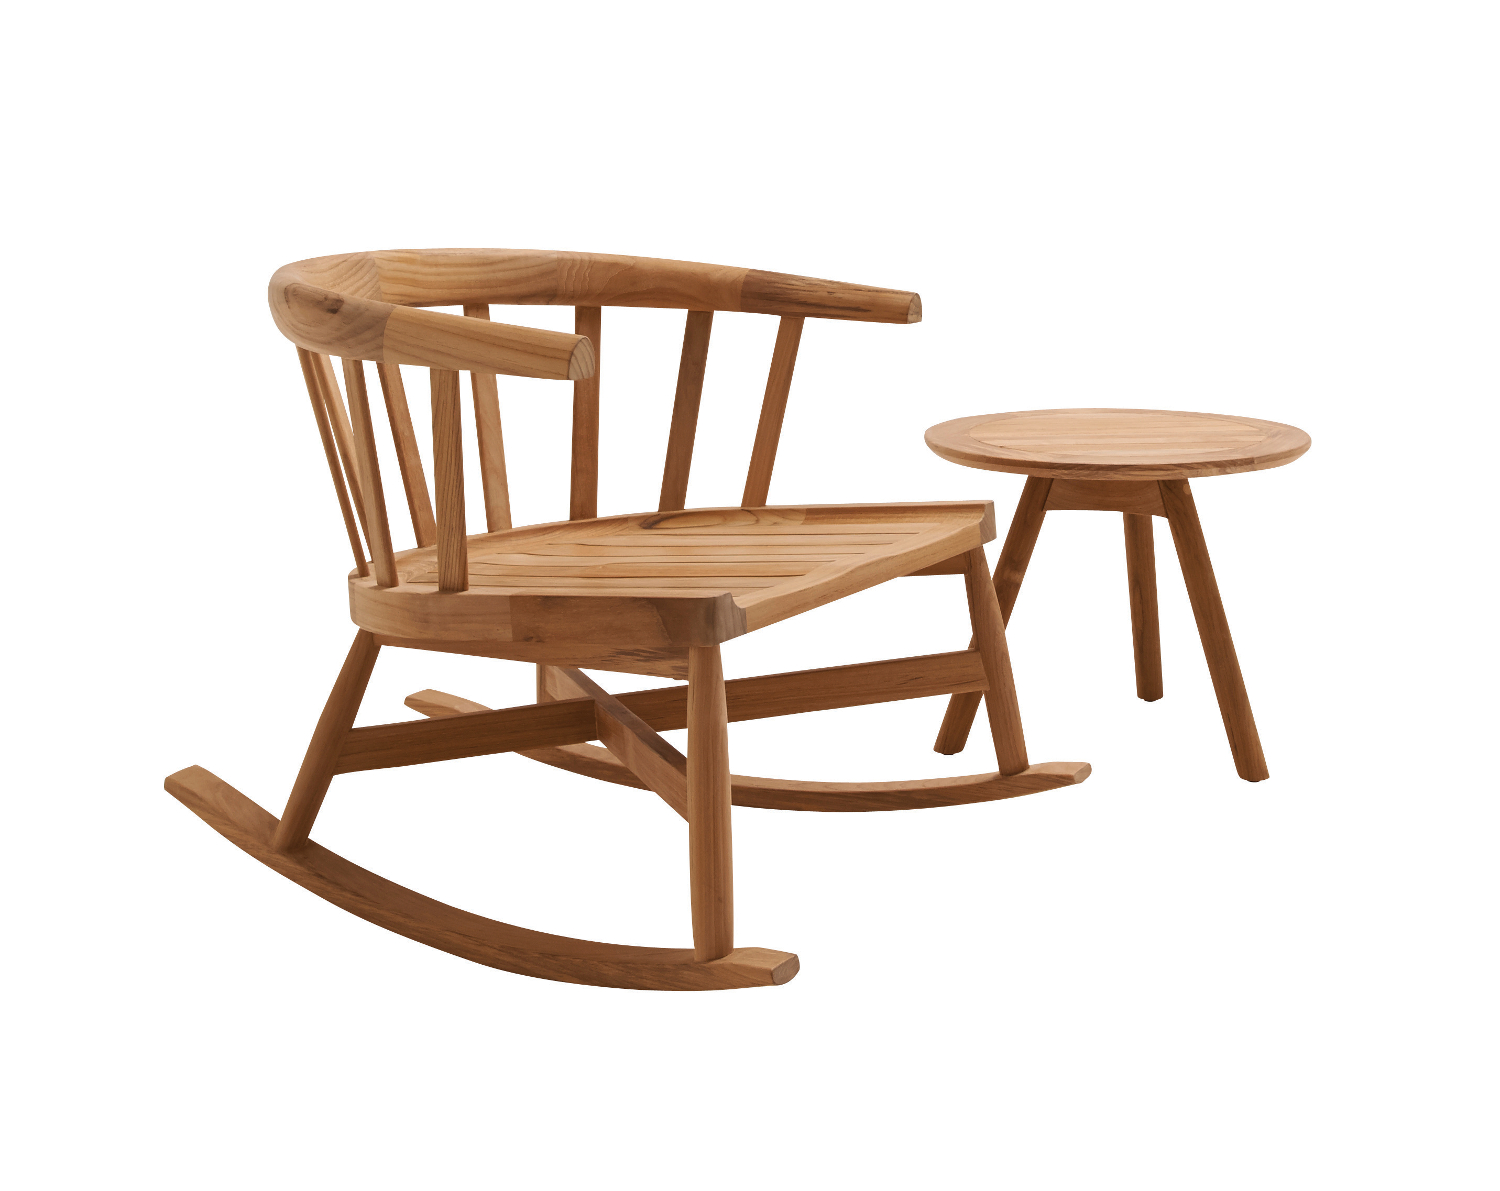 Image of: Unique Teak Lounge Chair